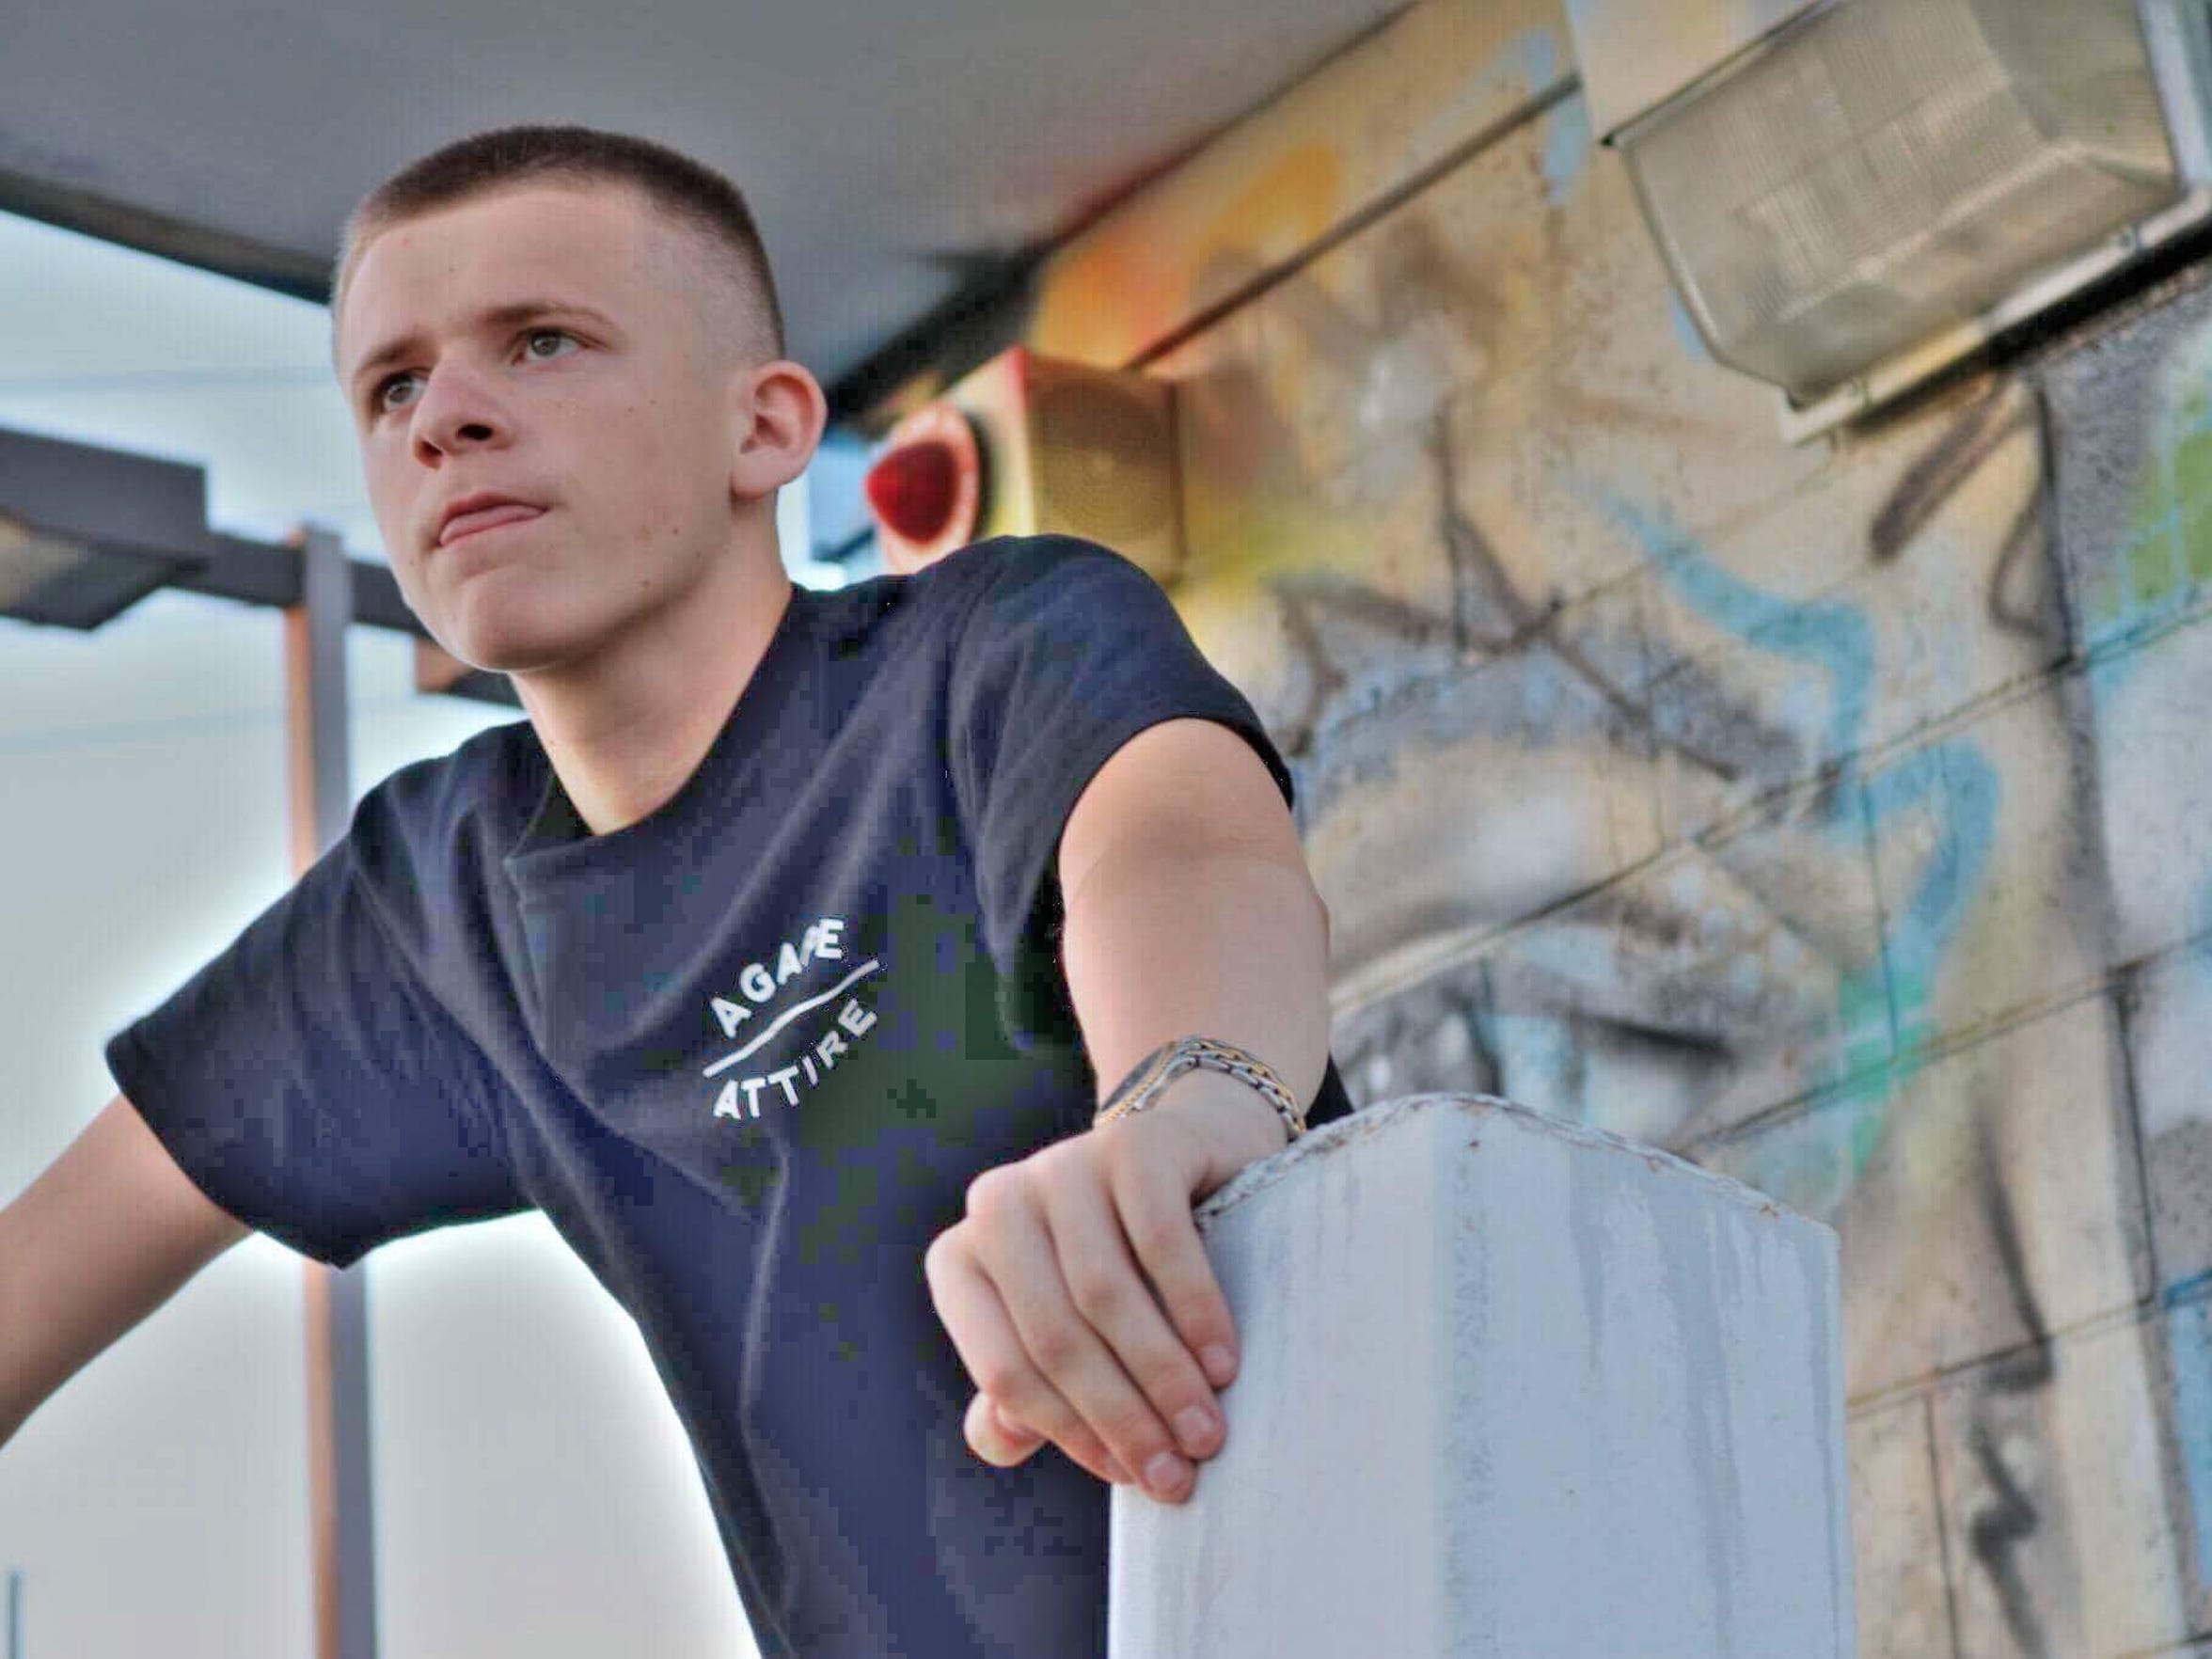 Matthew Chavez, known as Vez, is a rap artist and resident of Rio Rancho, New Mexico, who recently signed with record label P4P Entertainment, a brand-new label based out of Atlanta, Georgia.